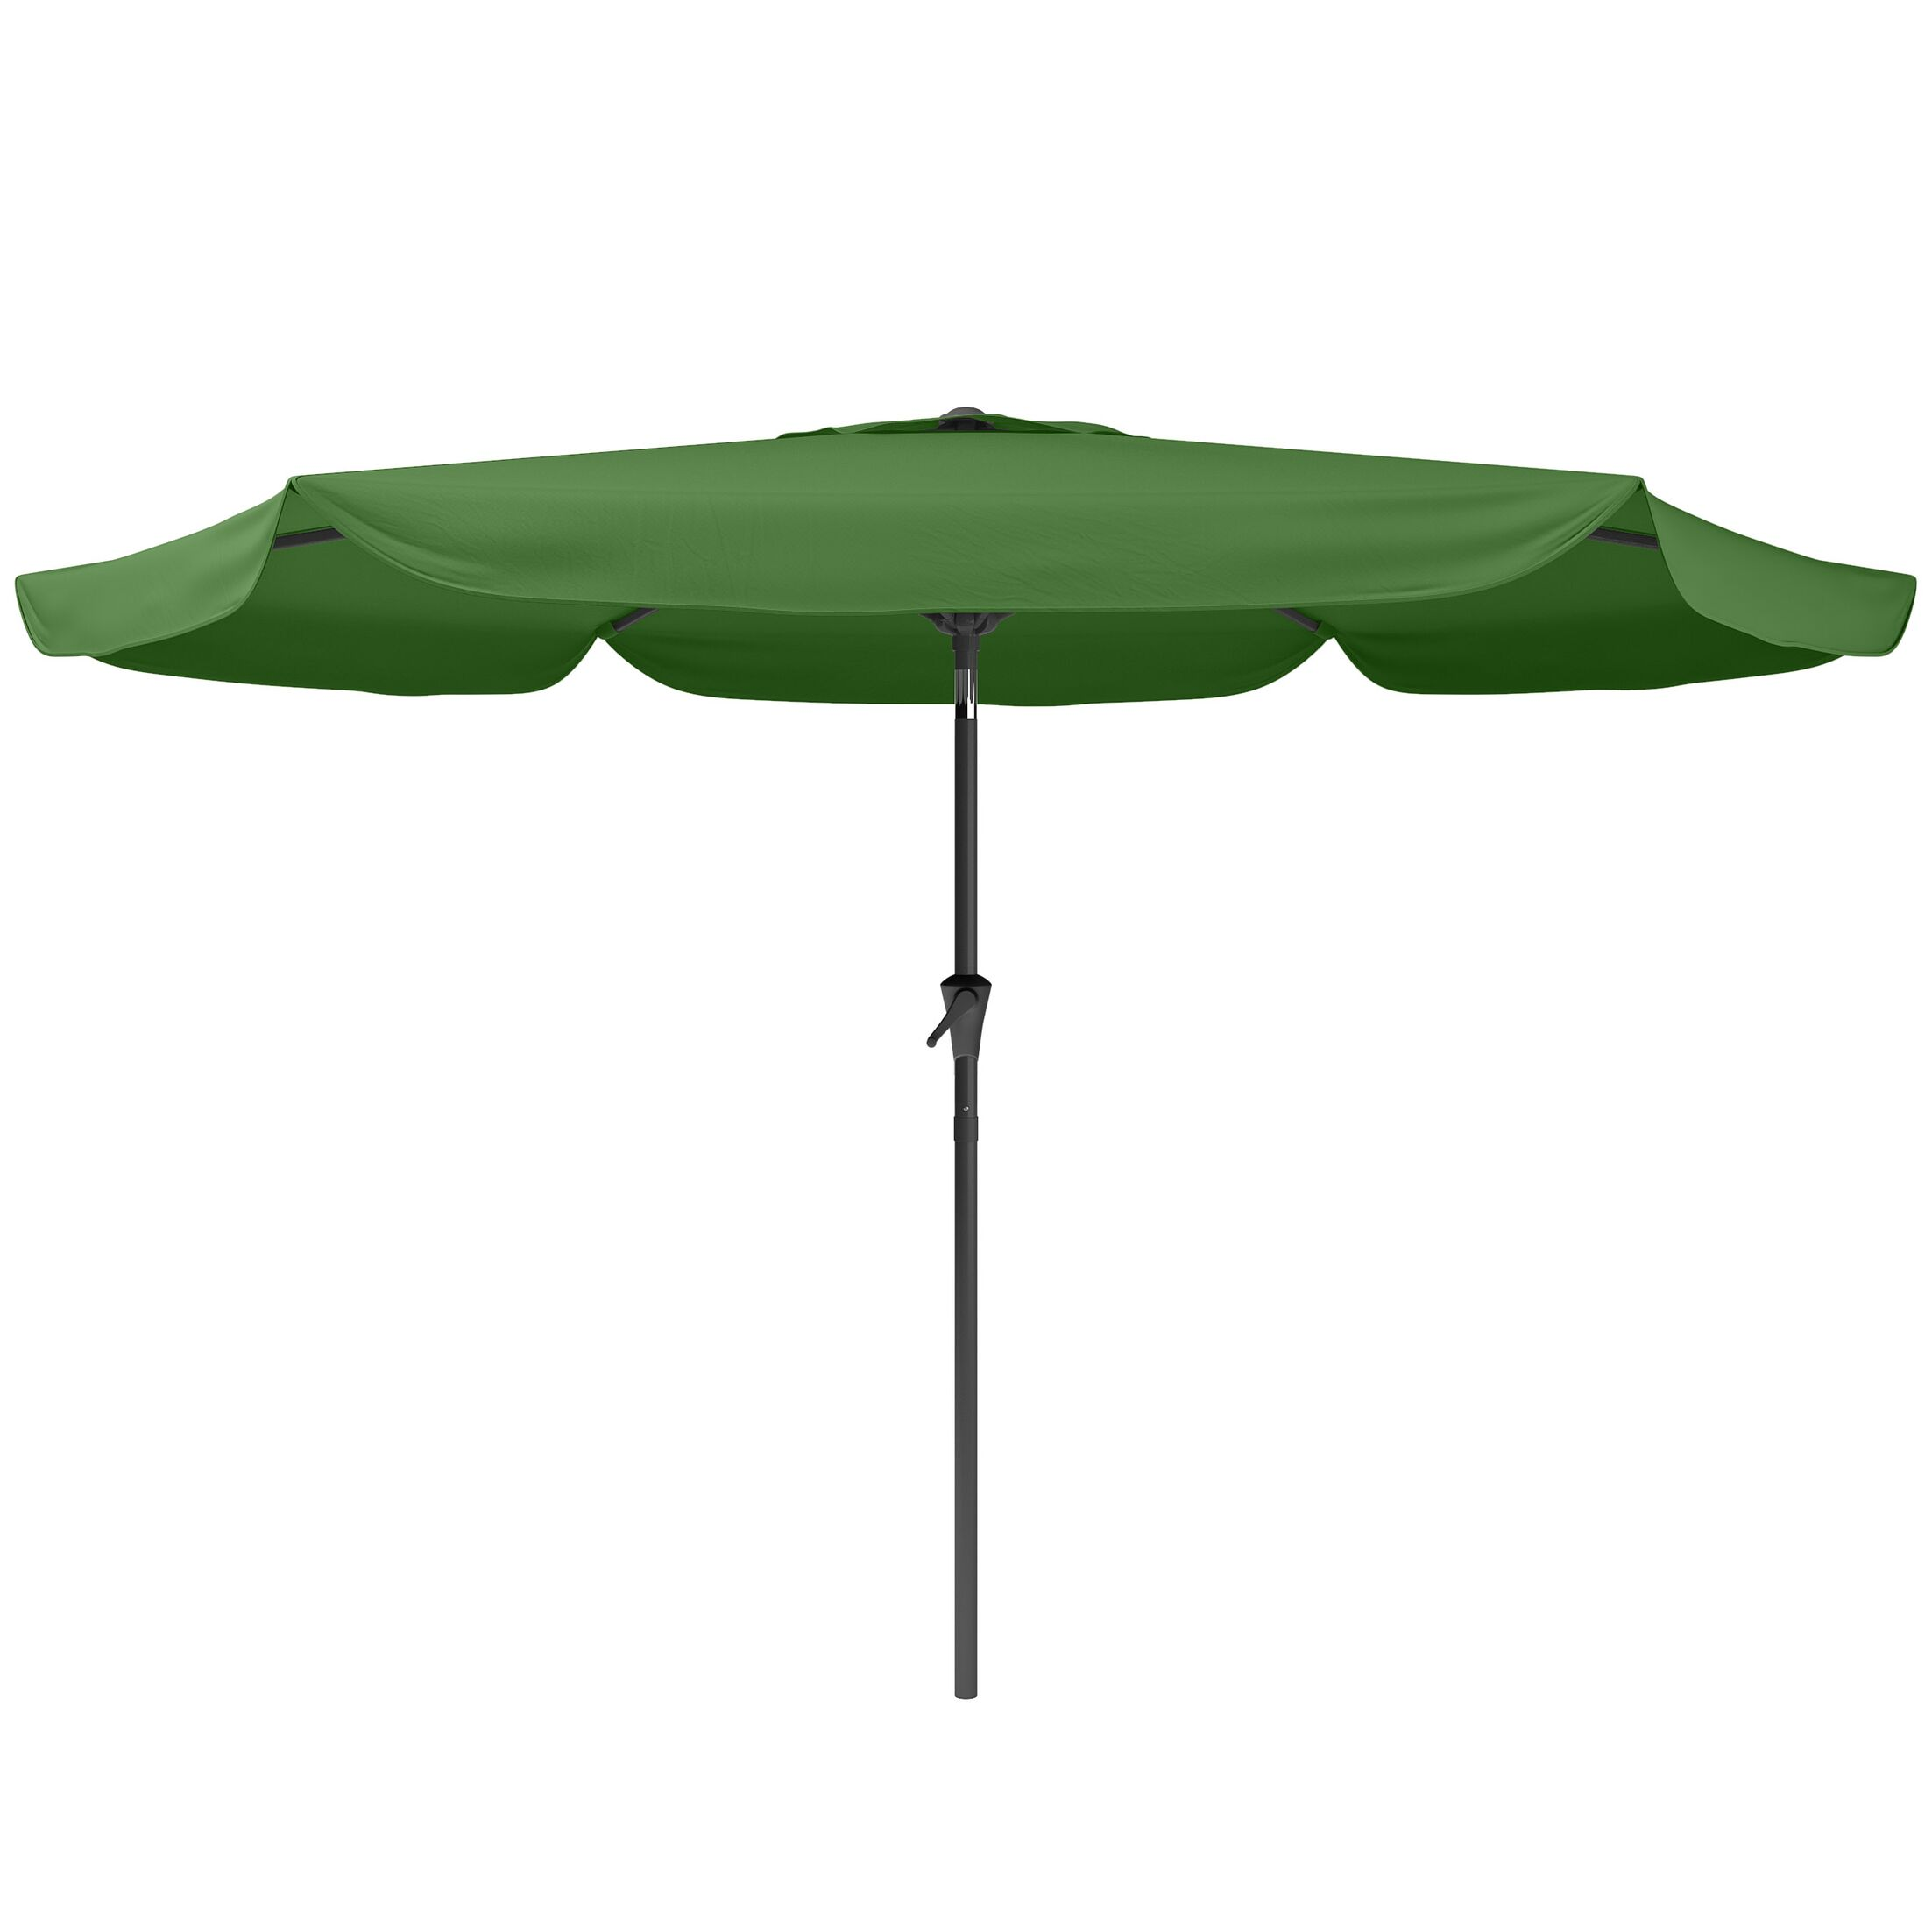 Corliving 10' Market Umbrella Fabric Color: Forest Green